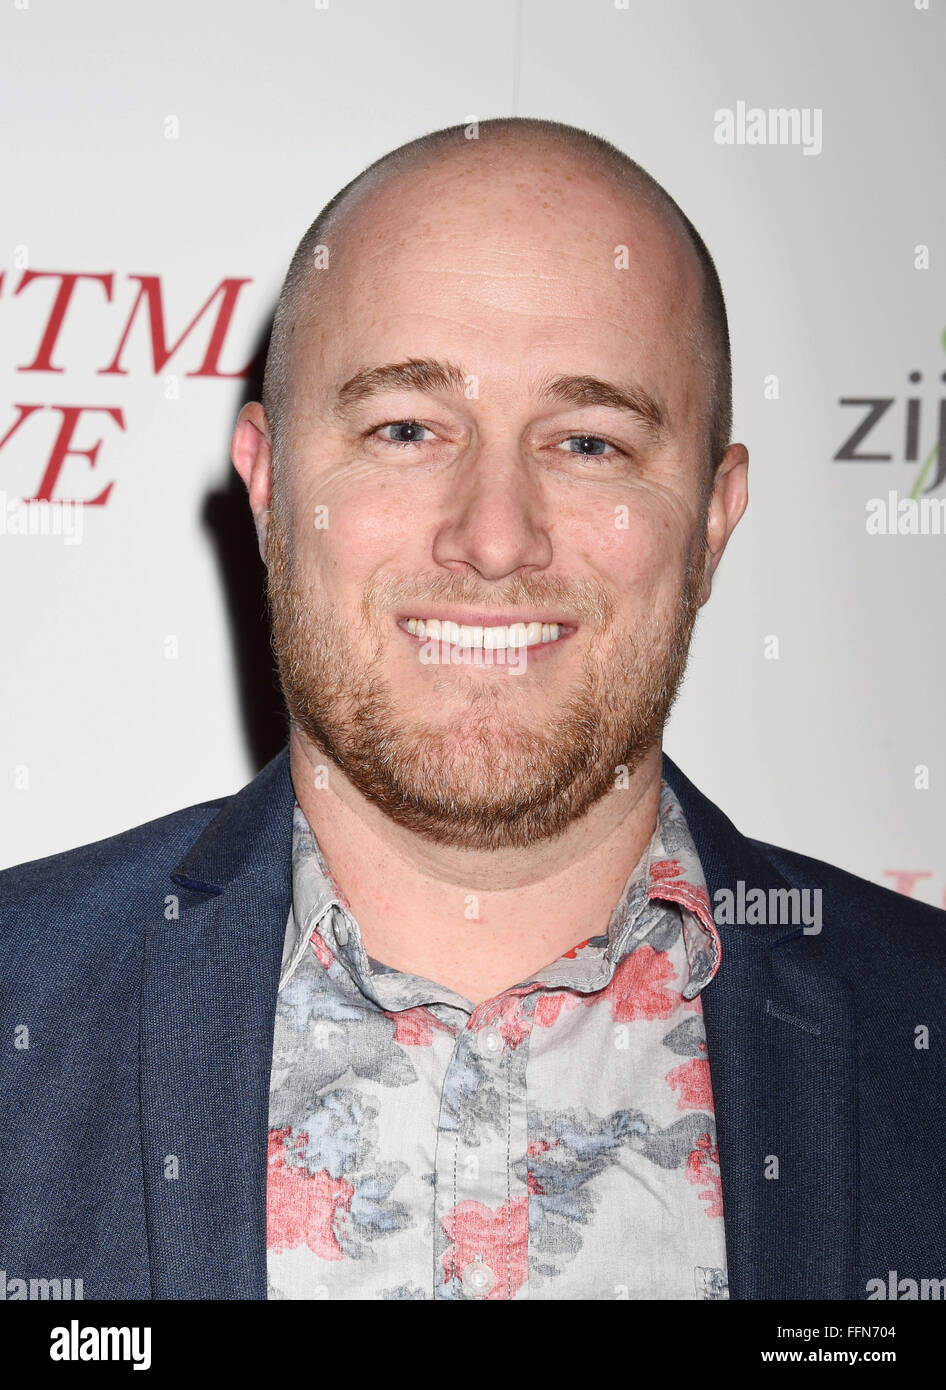 Composer Christian Davis arrives at the premiere of Unstuck's 'Christmas Eve' at the ArcLight Hollywood - Stock Image